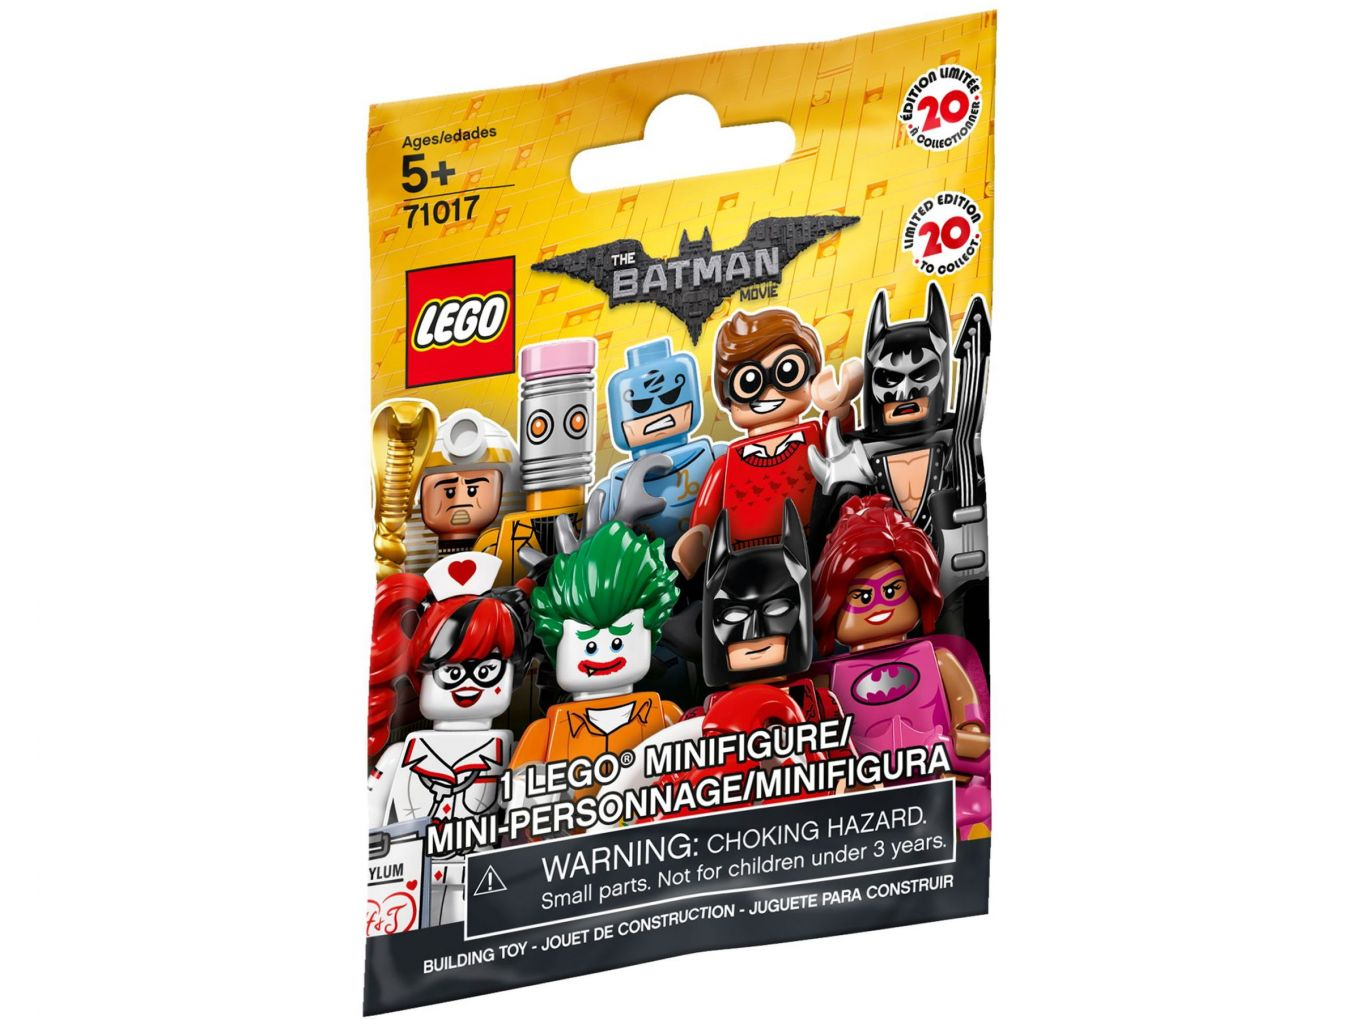 LEGO 71017 Zakje Minifigures LEGO Batman Movie